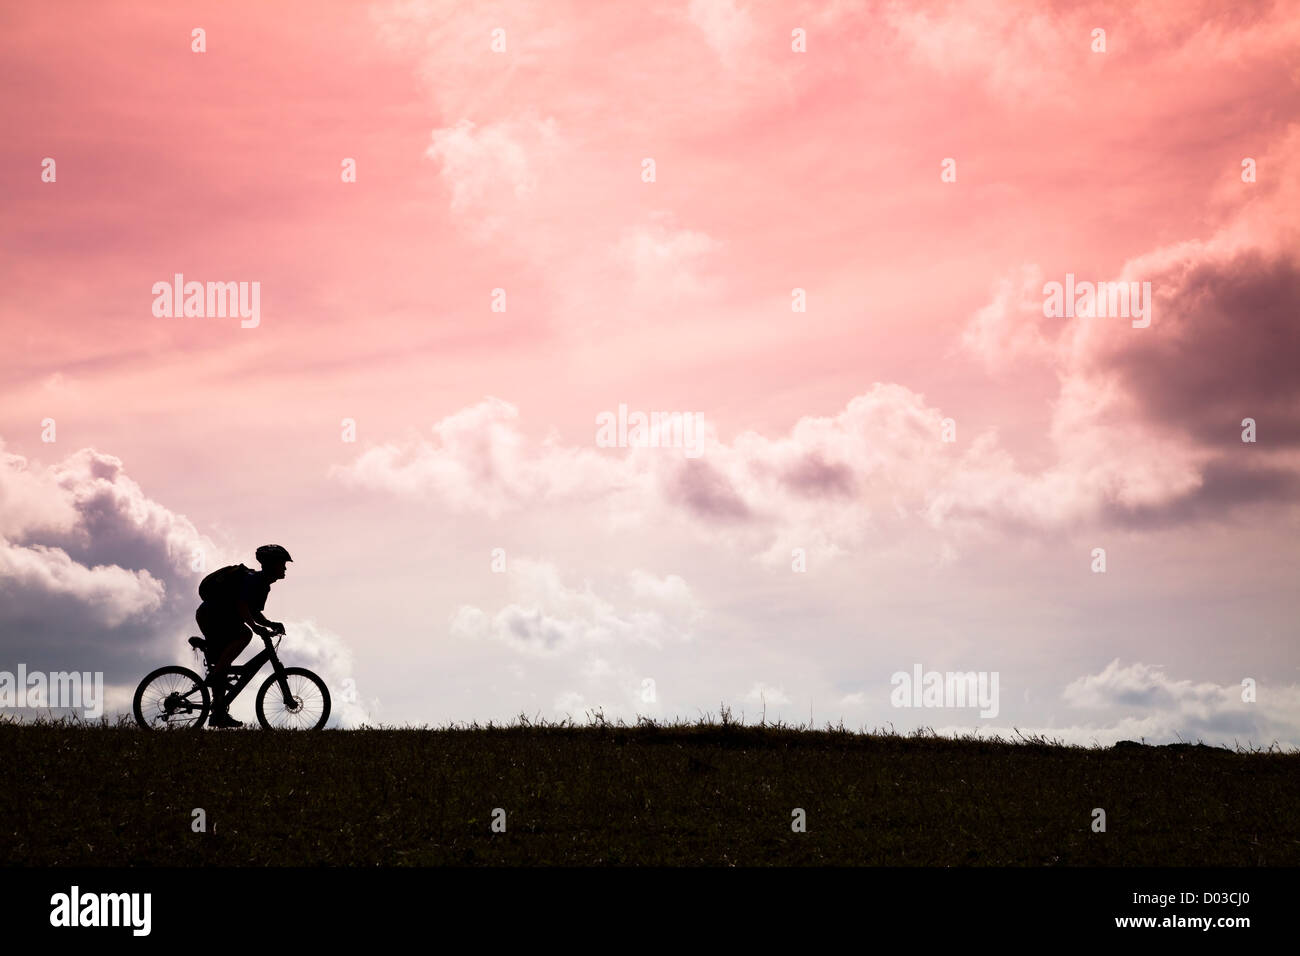 The Silhouette of mountain bike rider and sunset - Stock Image